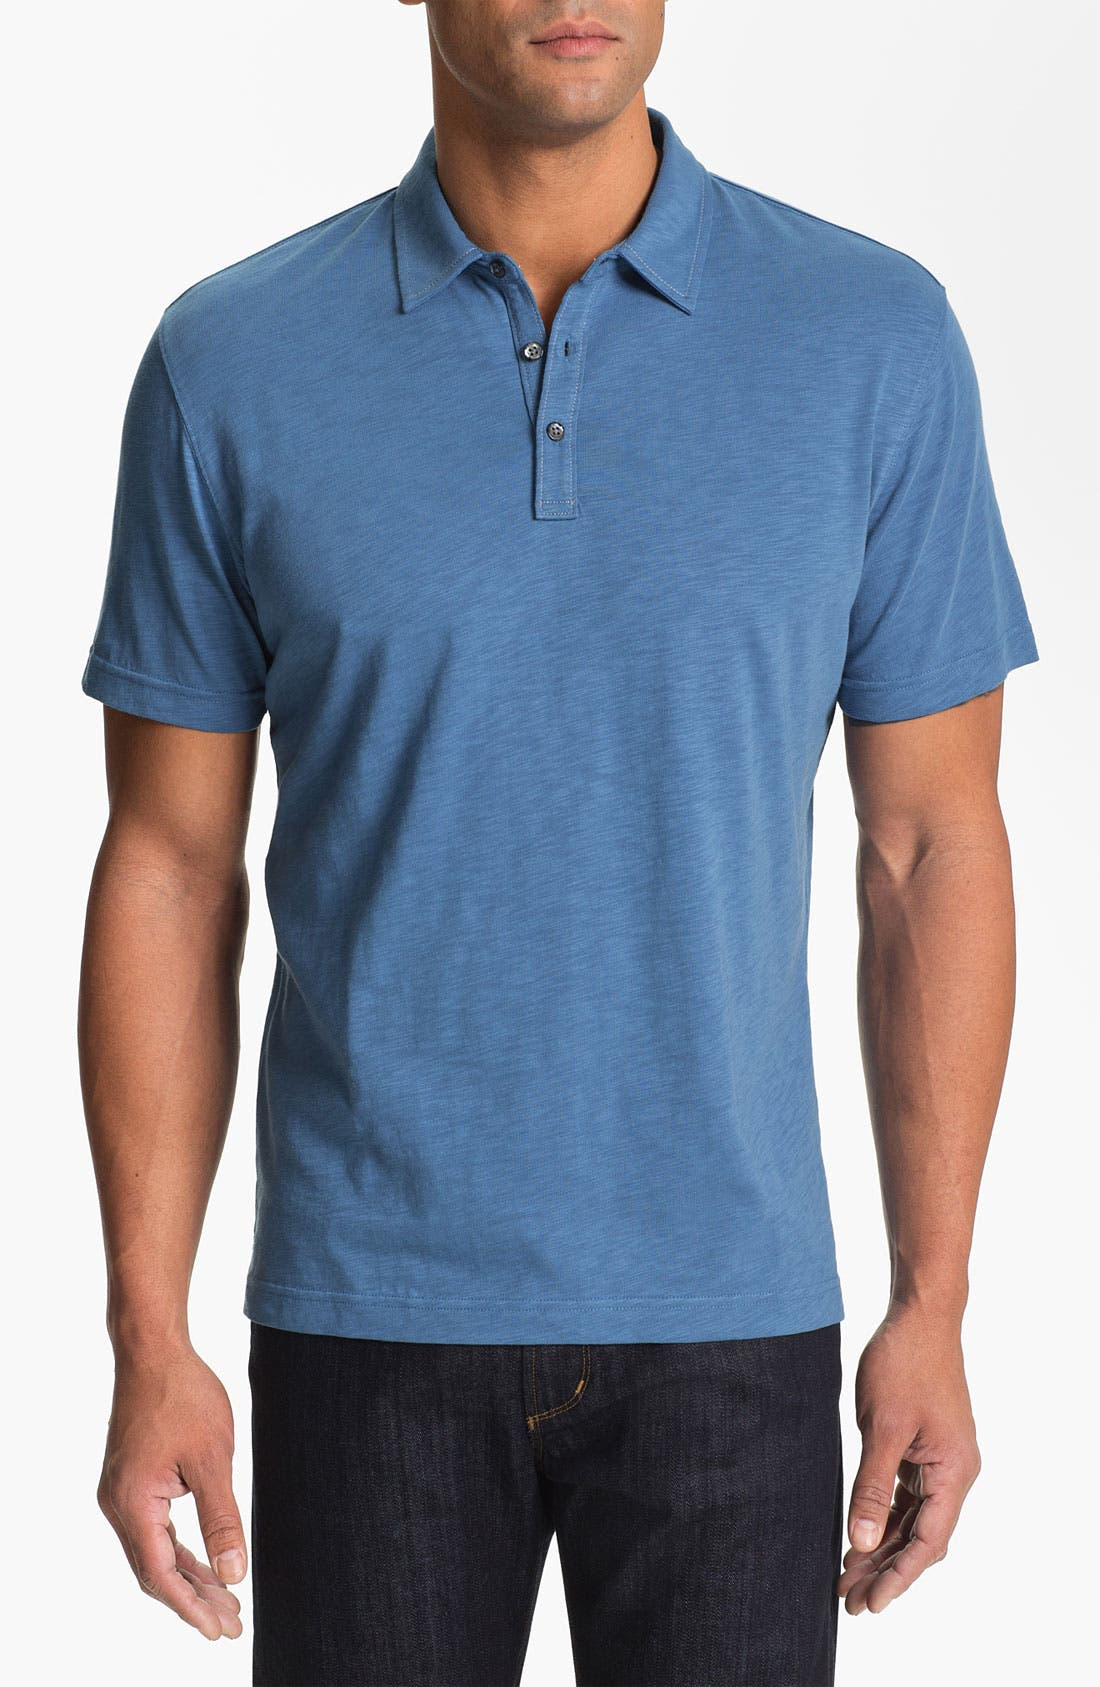 Alternate Image 1 Selected - Robert Barakett 'Miami' Regular Fit Polo